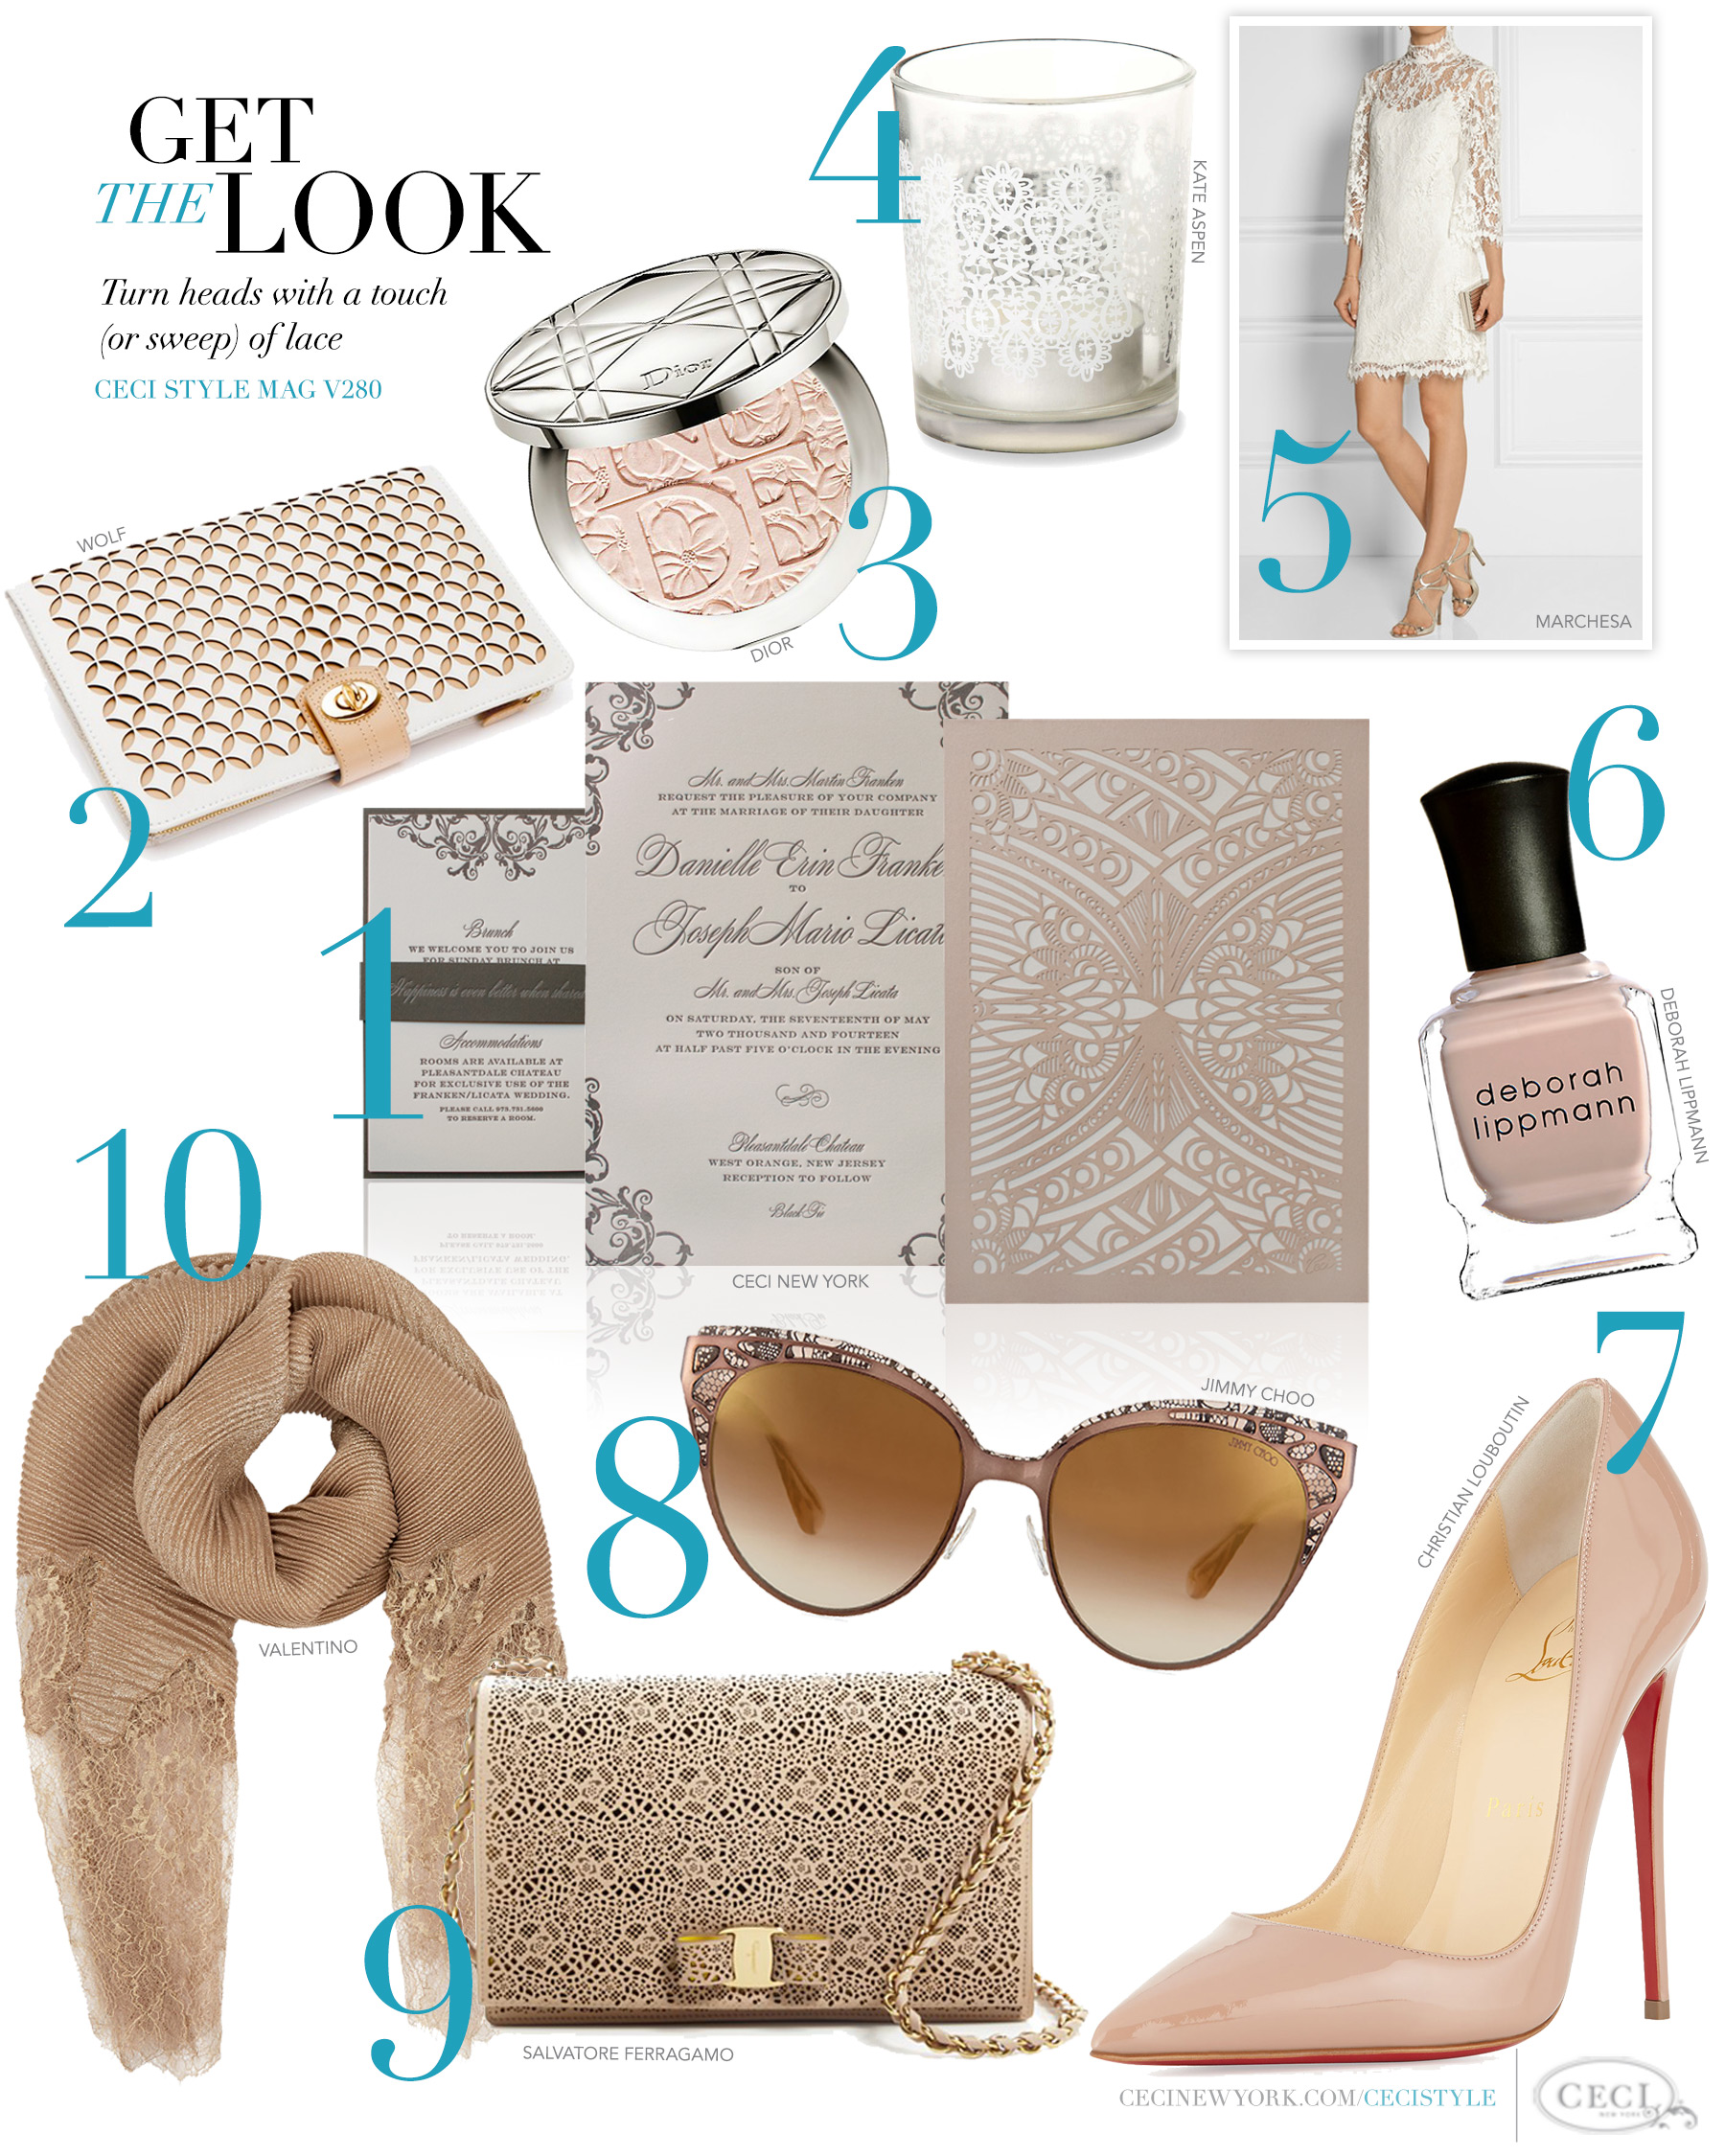 CeciStyle Magazine v280: Get The Look - Modern Lace - Turn heads with a touch (or sweep) of lace - Luxury Wedding Invitations by Ceci New York - ceci new york, couture, wedding invitations, lace, modern, contemporary, wolf, dior, kate aspen, marchesa, deborah lippmann, christian louboutin, jimmy choo, salvatore ferragamo, valentino, style, fashion, jewelry, handbag, luxury, high end, dresses